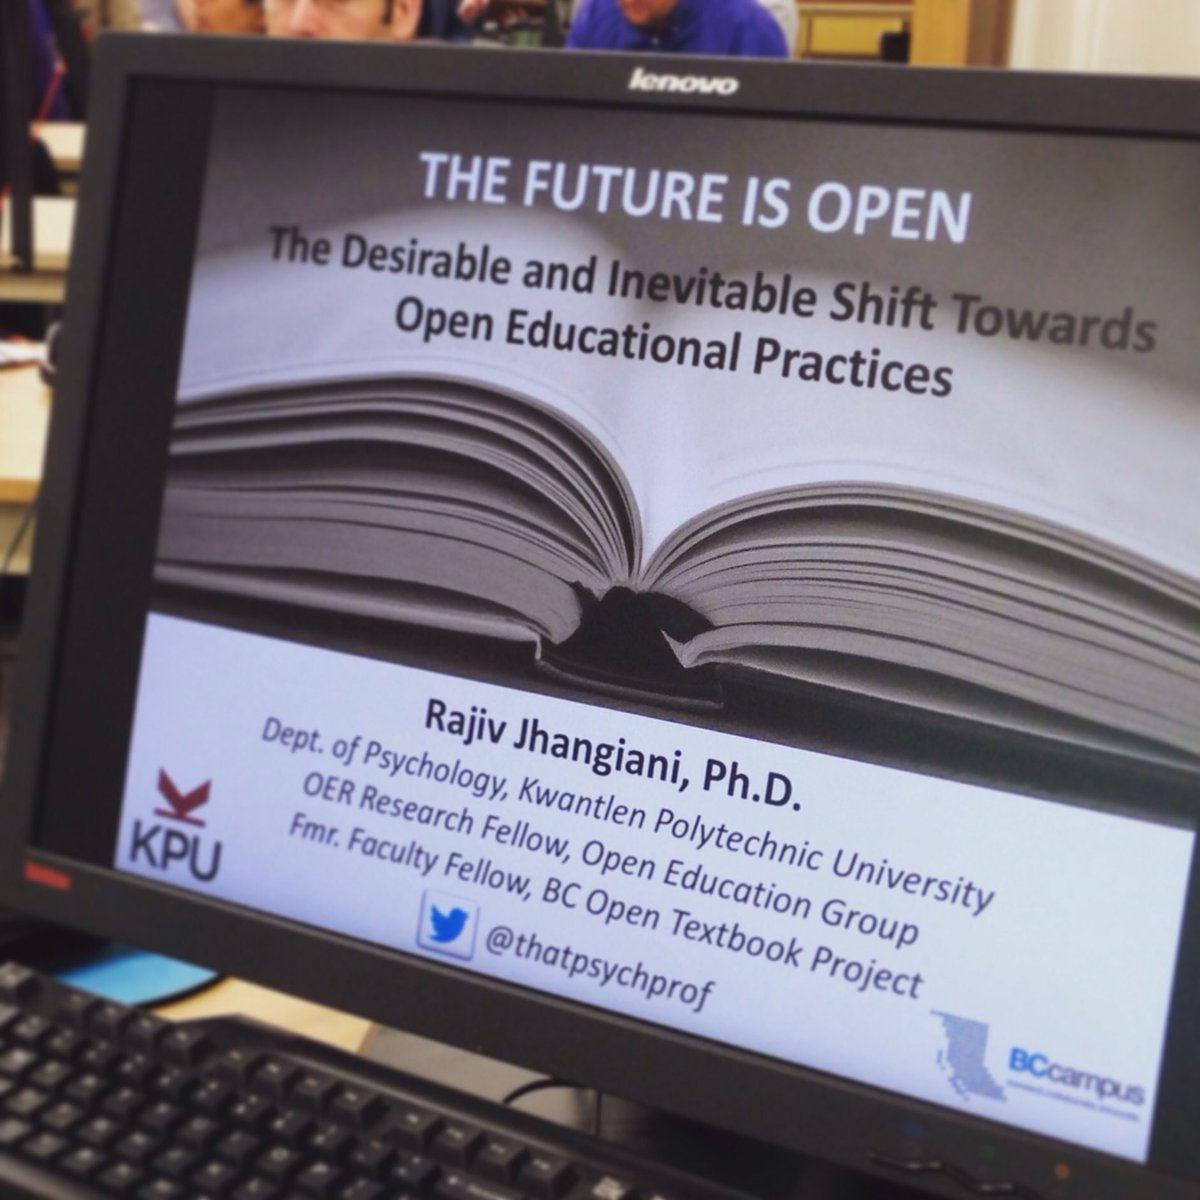 #uaopened #OpenEducationWk #ualberta https://t.co/o3f9BpKqUa